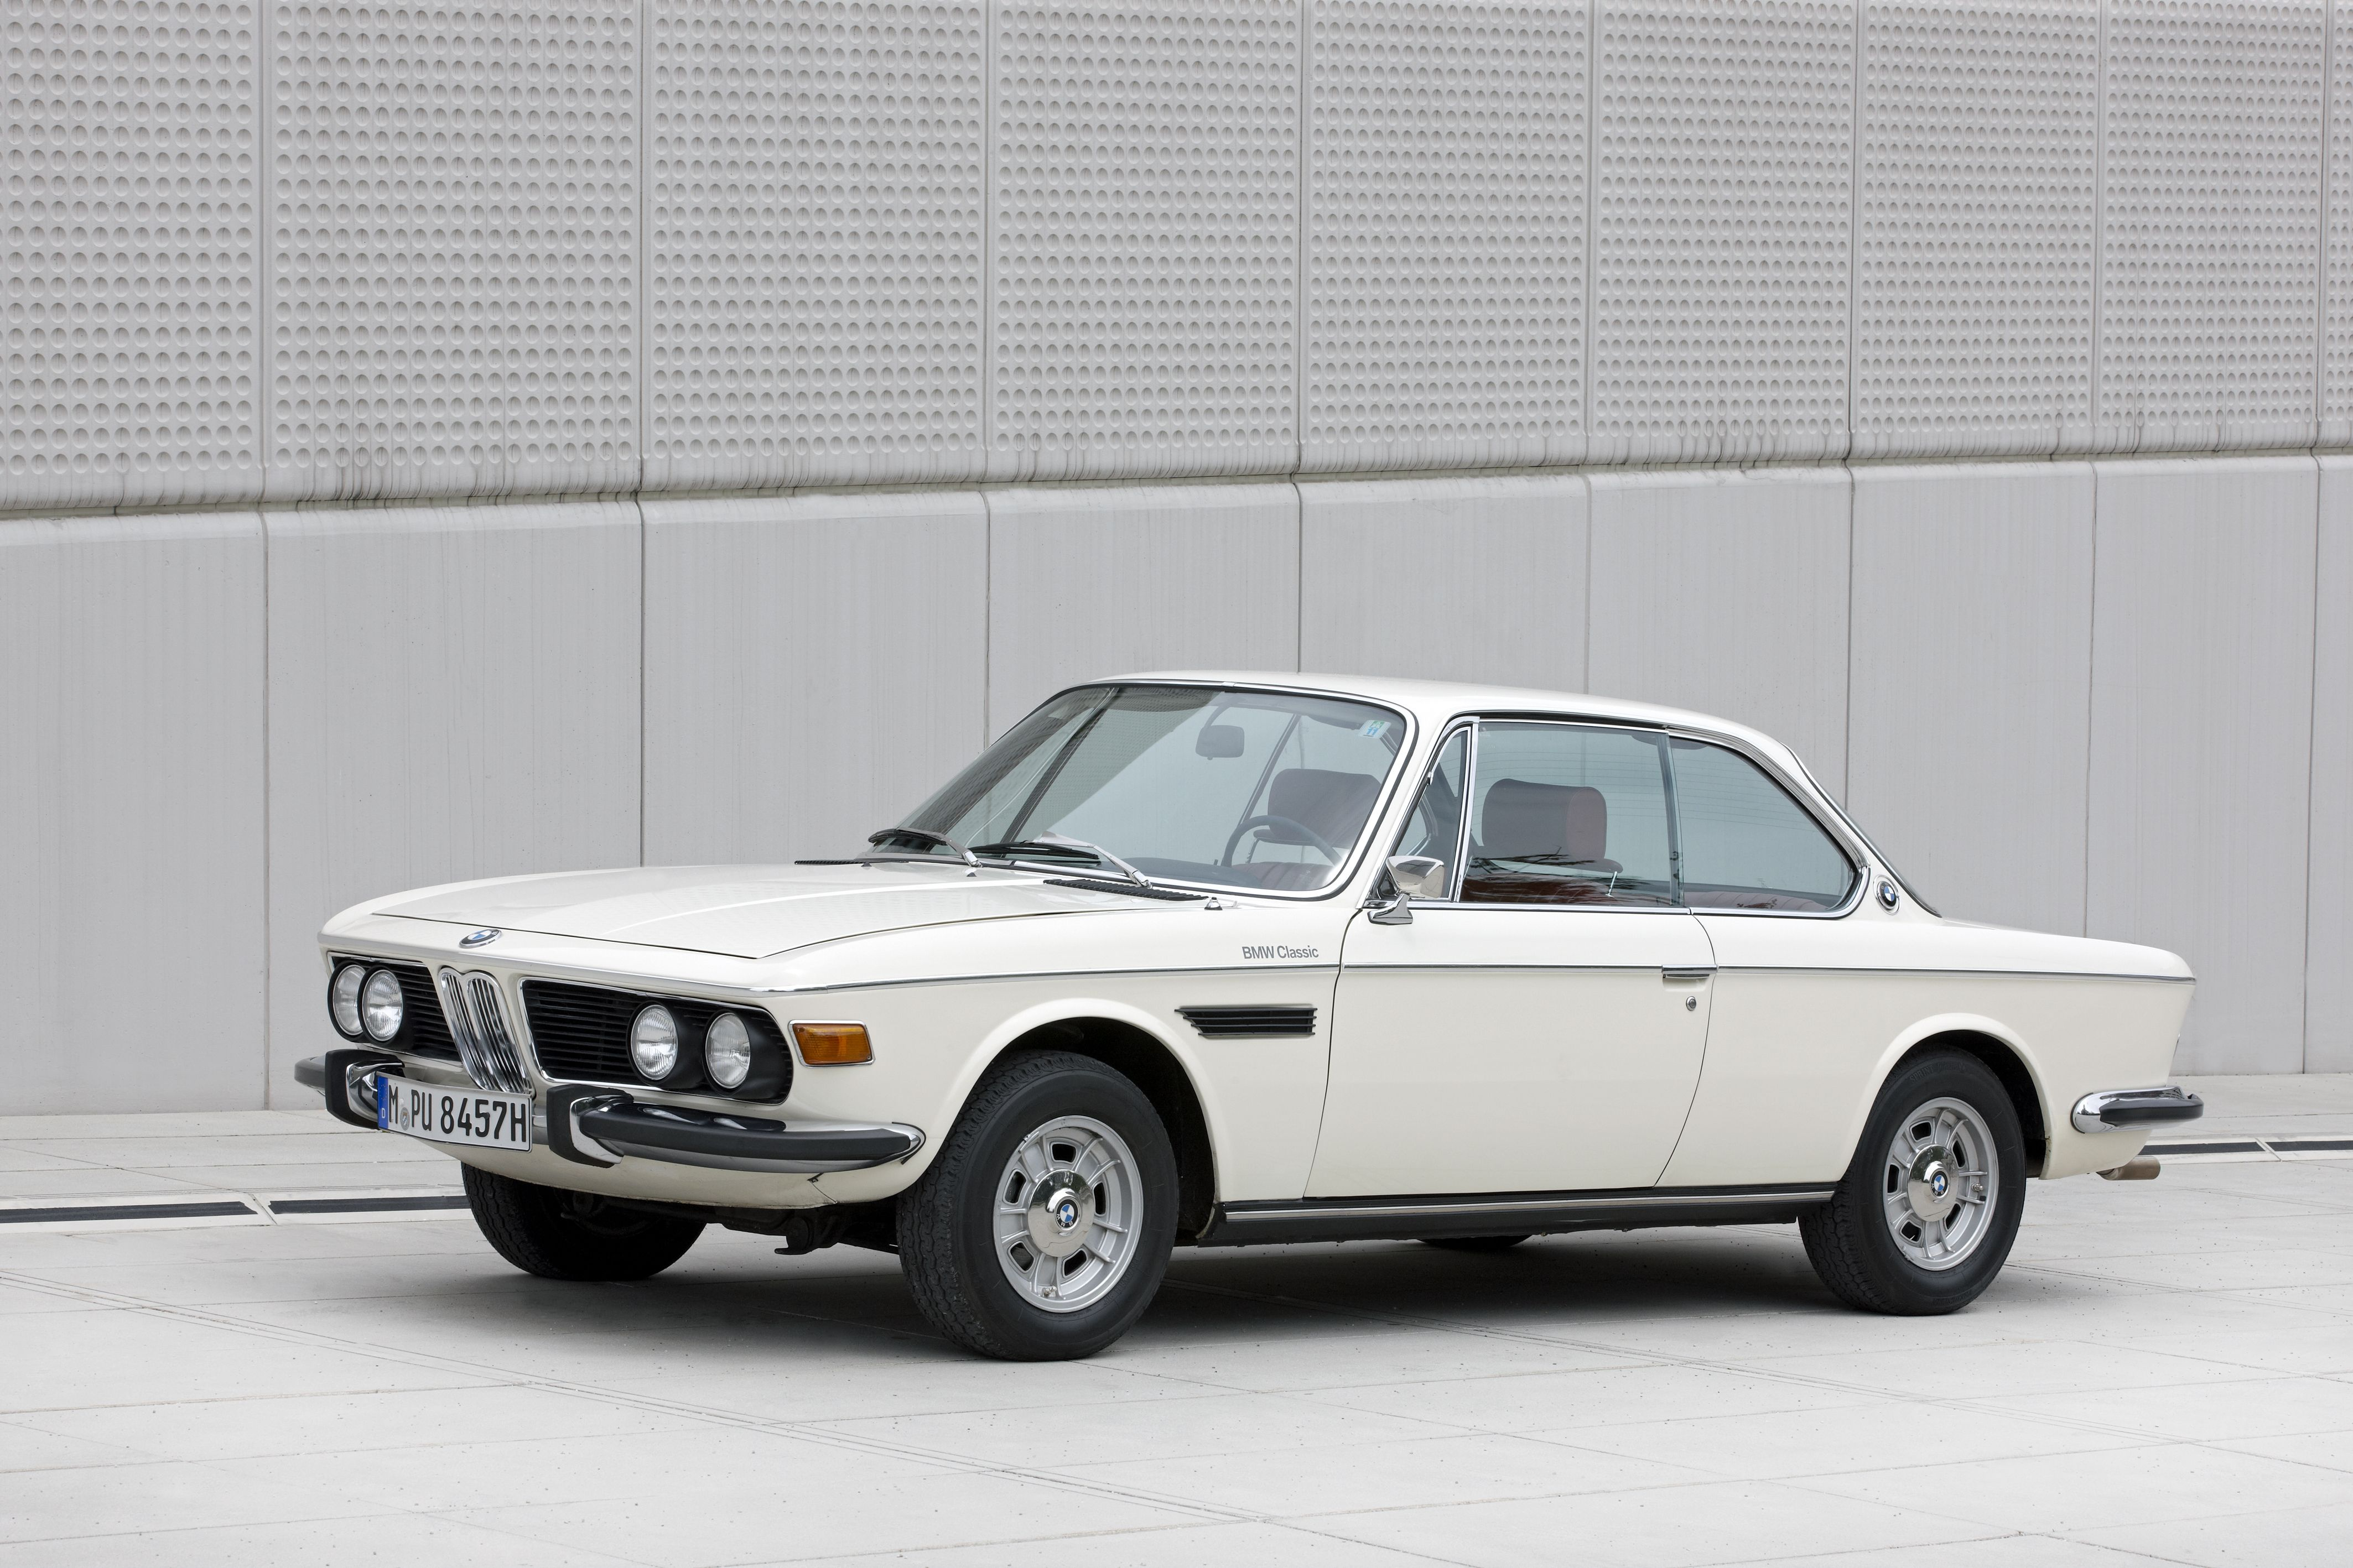 Bmw 3 0 Csi Sublime Favorite Cars Bmw Cars Bmw Design Bmw E9